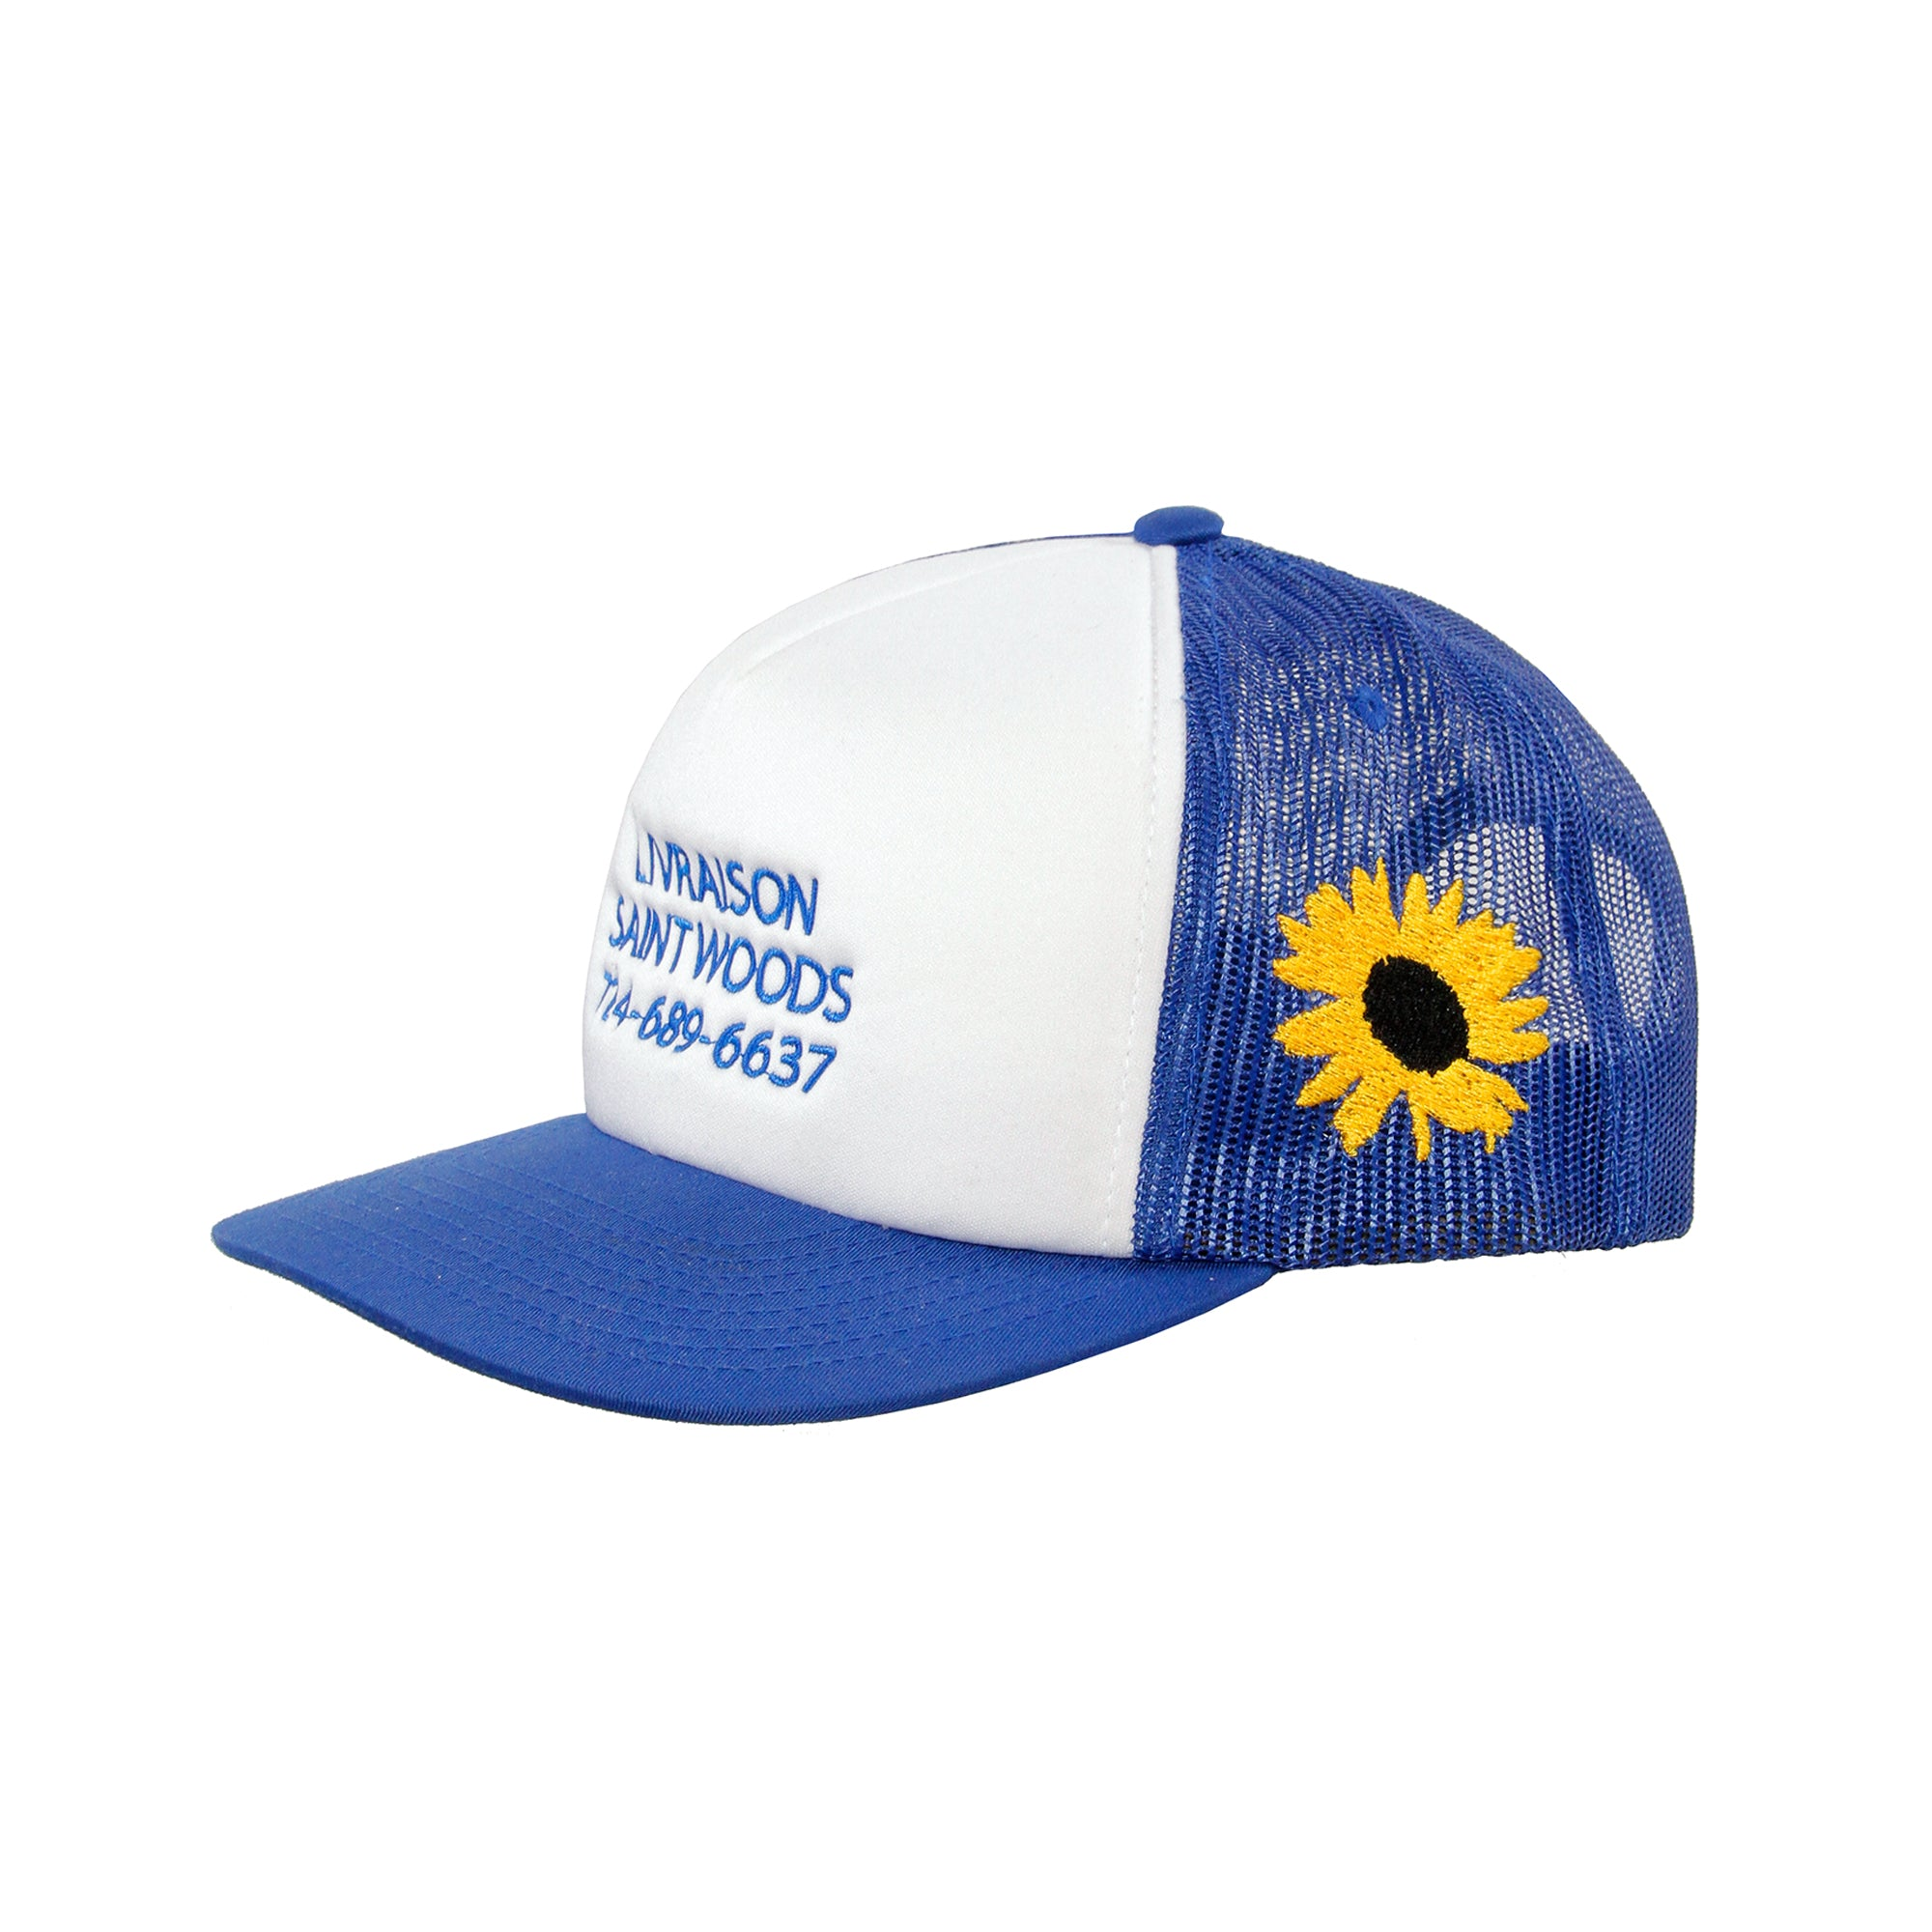 Flower Shop Hat - Hats - Saintwoods